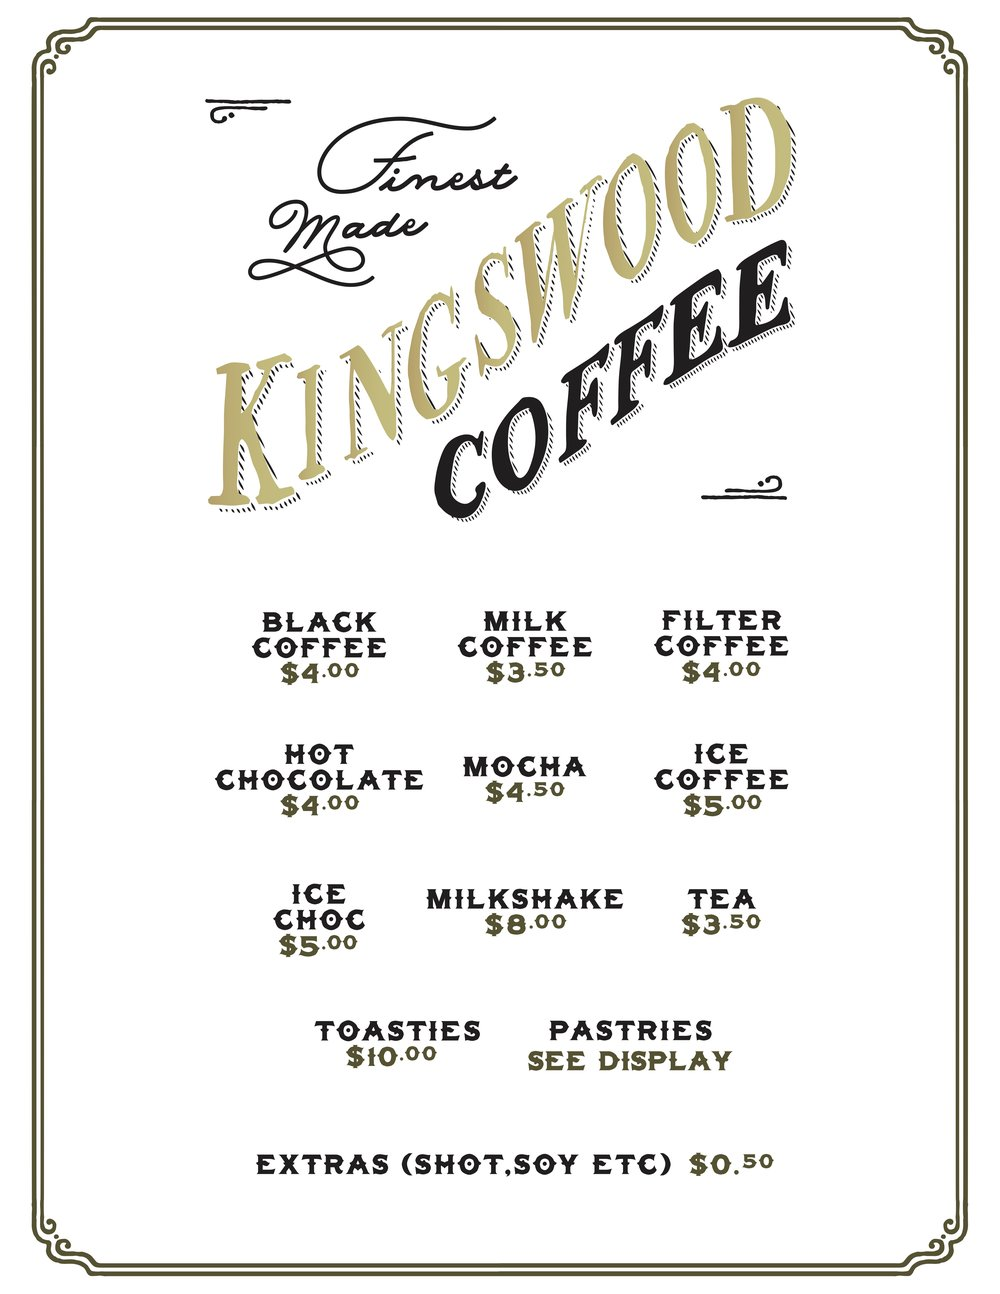 Kingswood Menu 2017.jpg